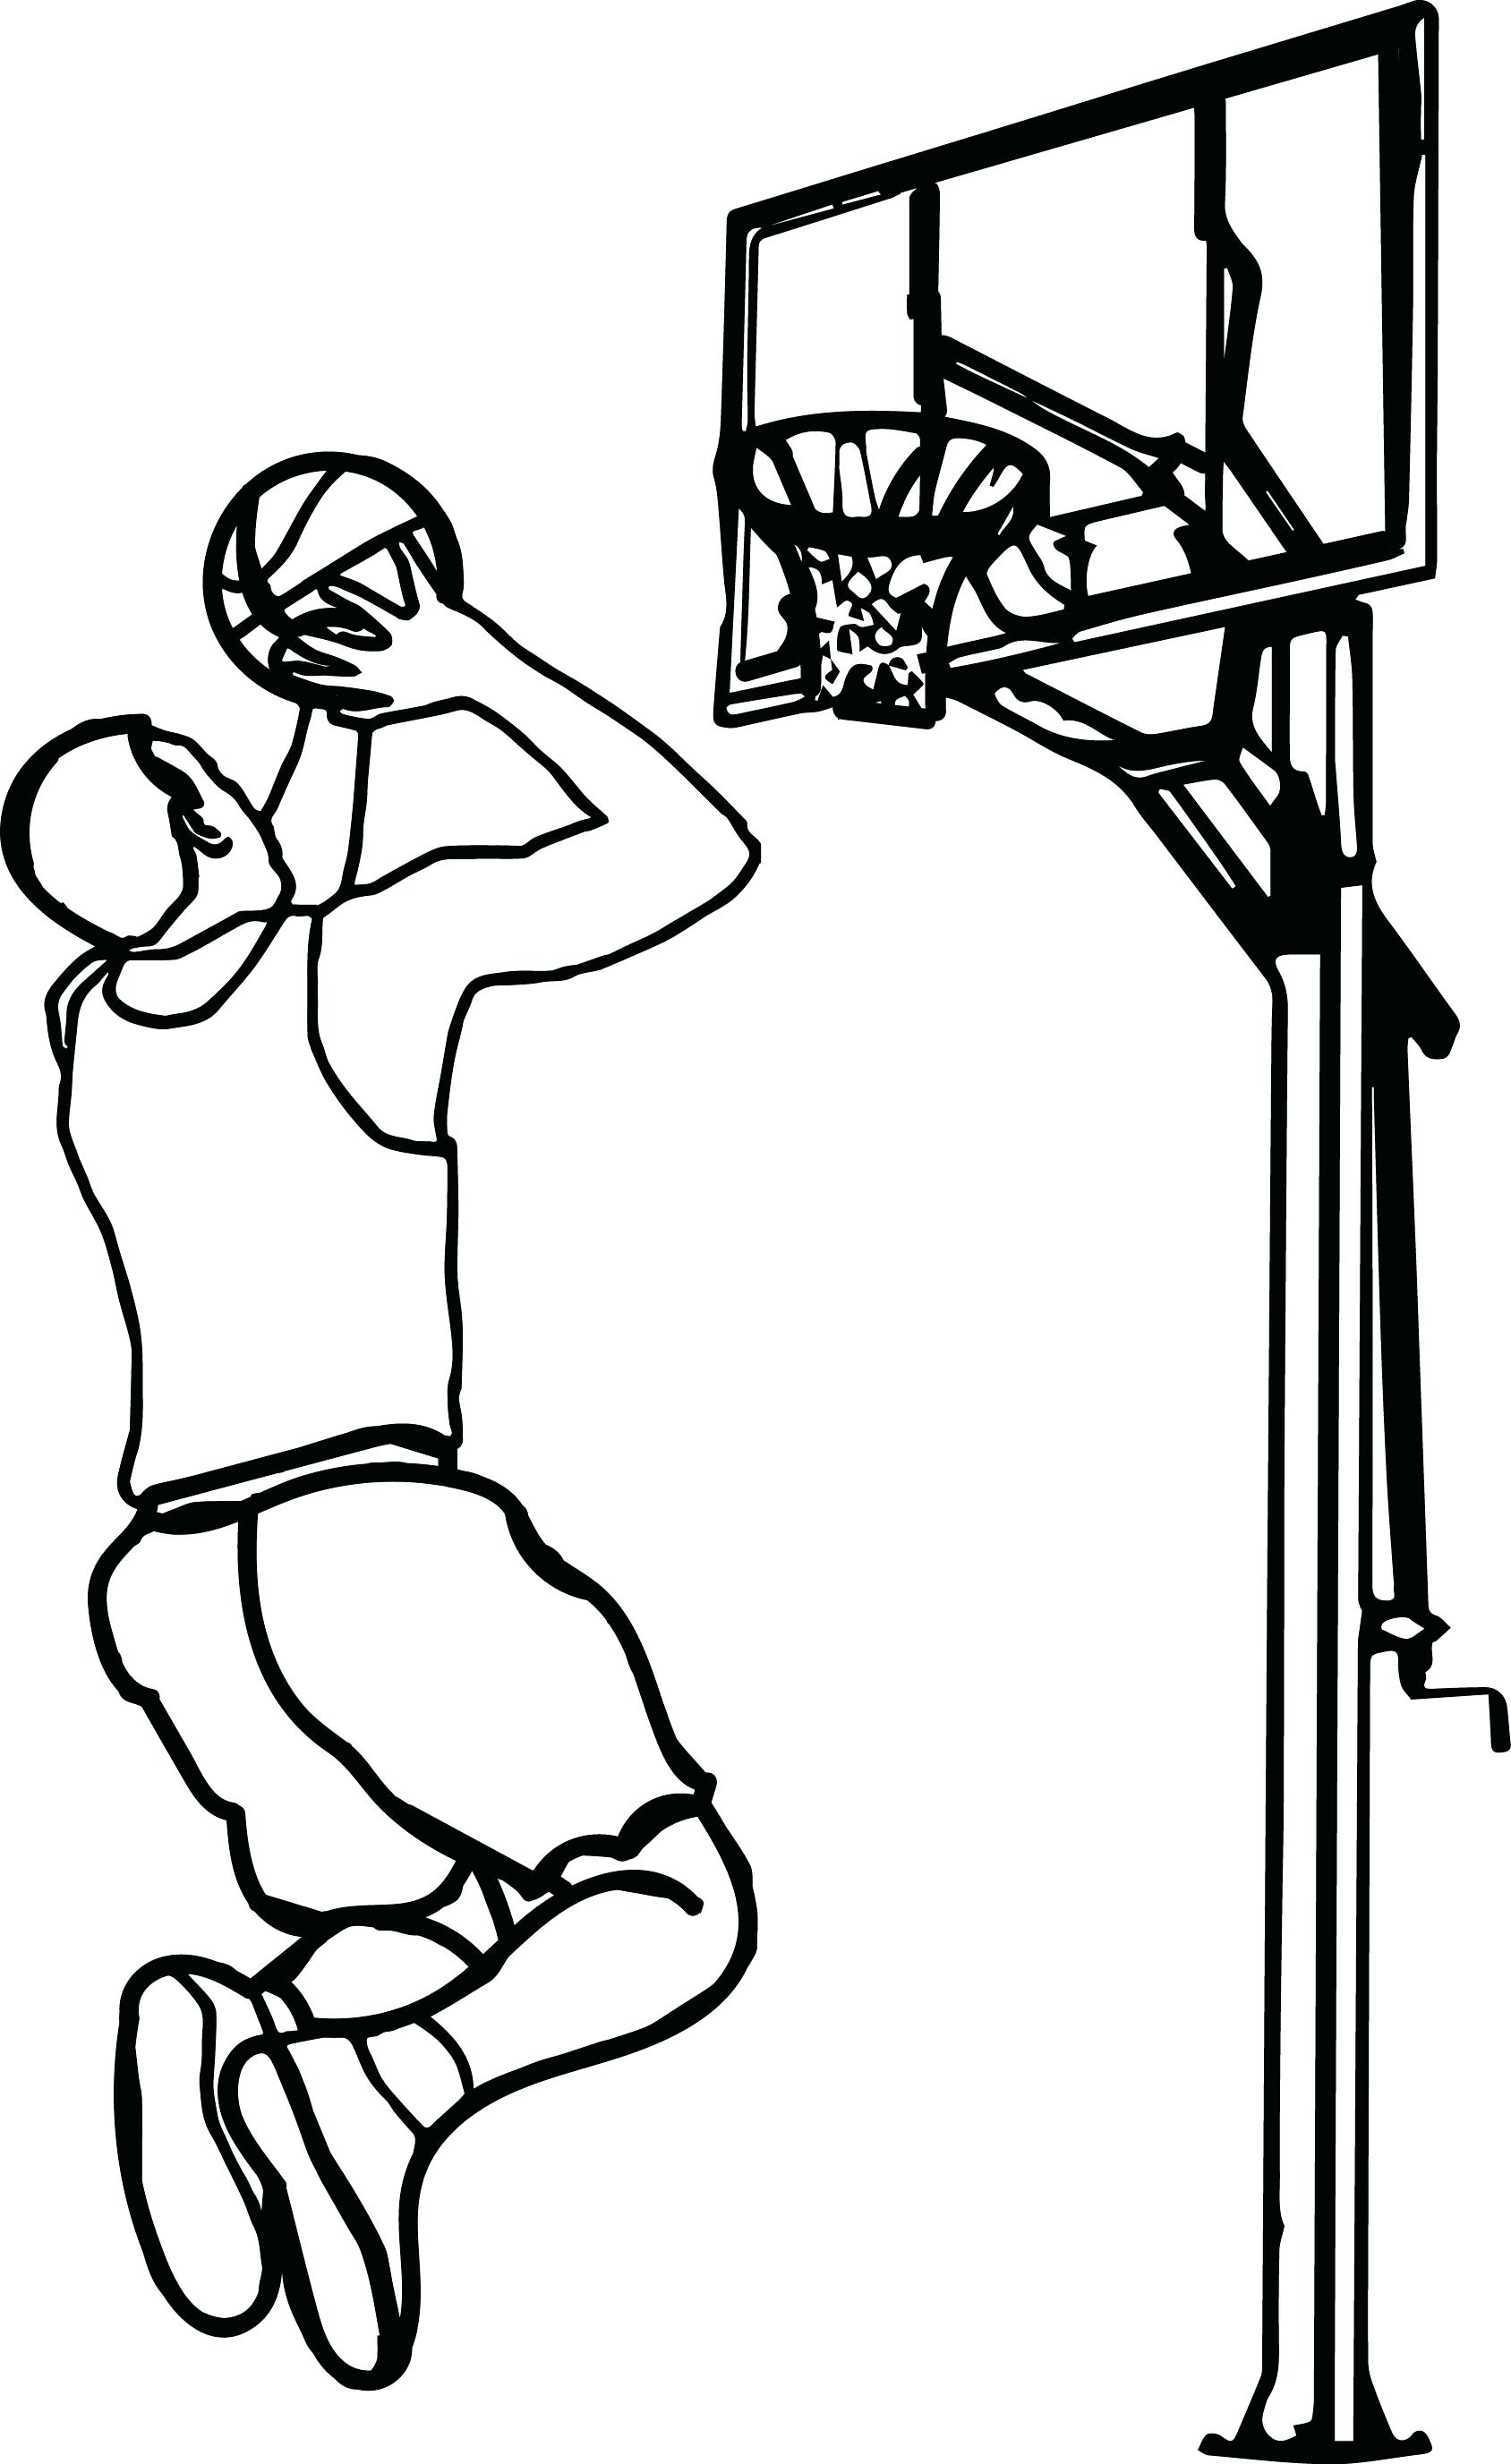 Basketball Hoop Diagram Goal Drawing At Free For Personal Use 1688x2753 Coloring Page Pages Diagrams Play